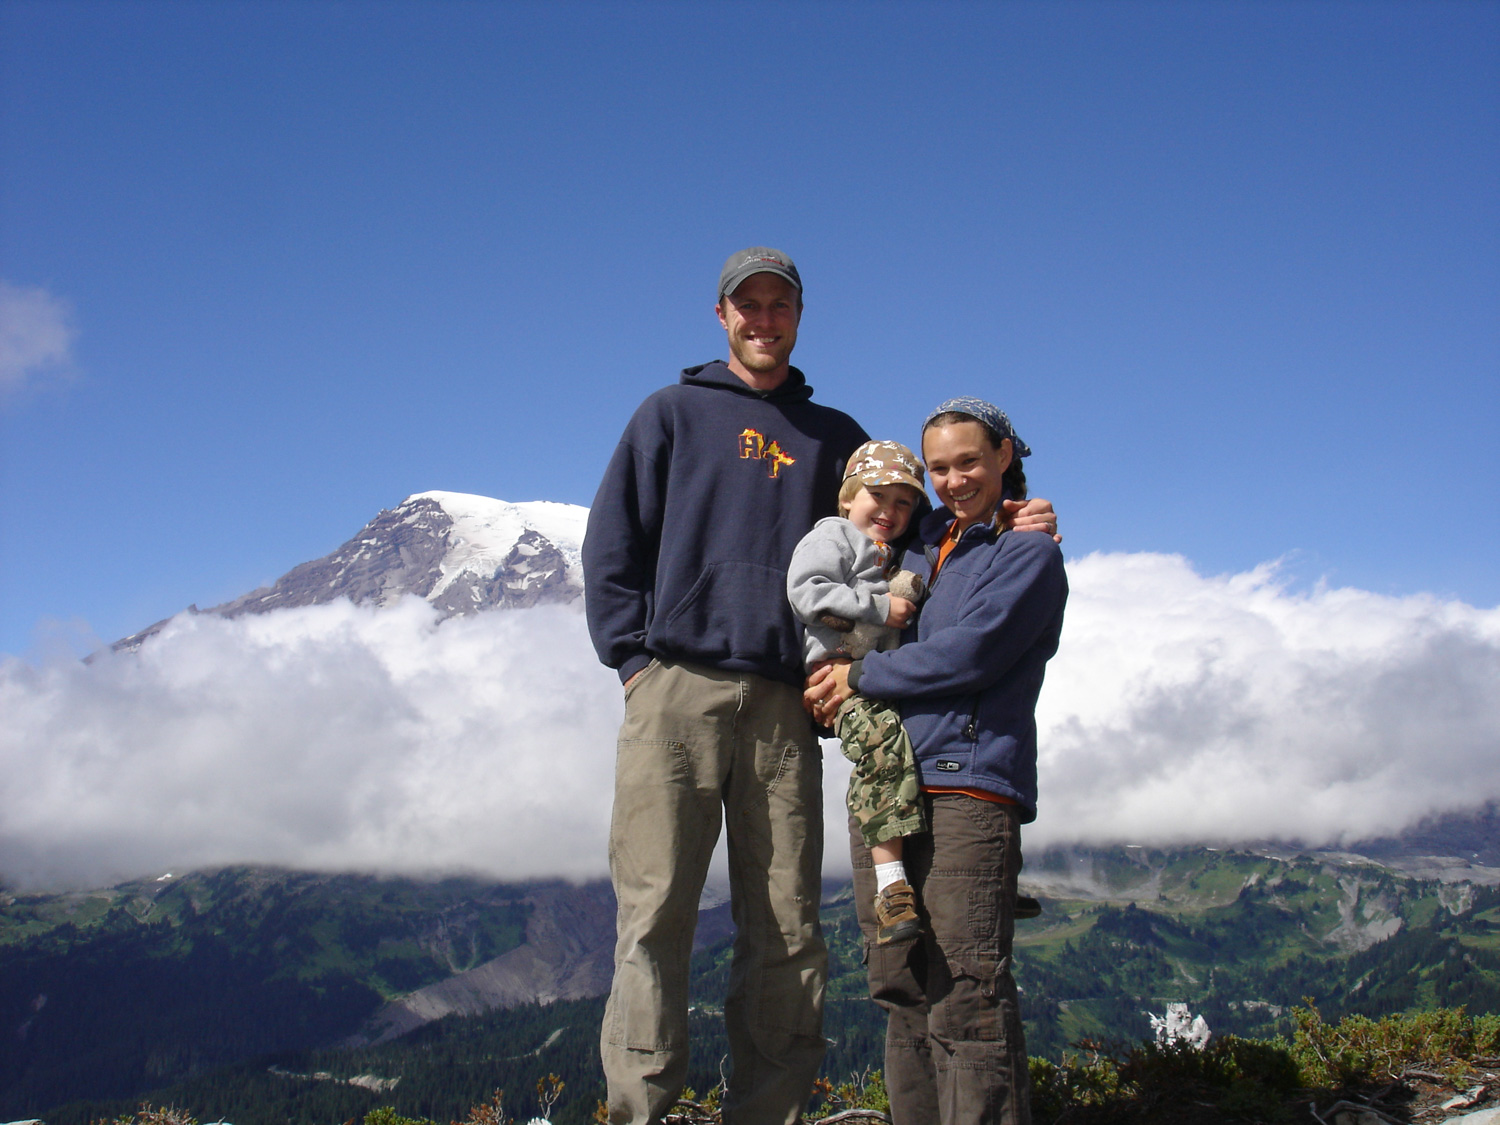 Scott atkins with his wife, Robyn, and son, Cedar, on a camping trip at Mt. Rainier National Park